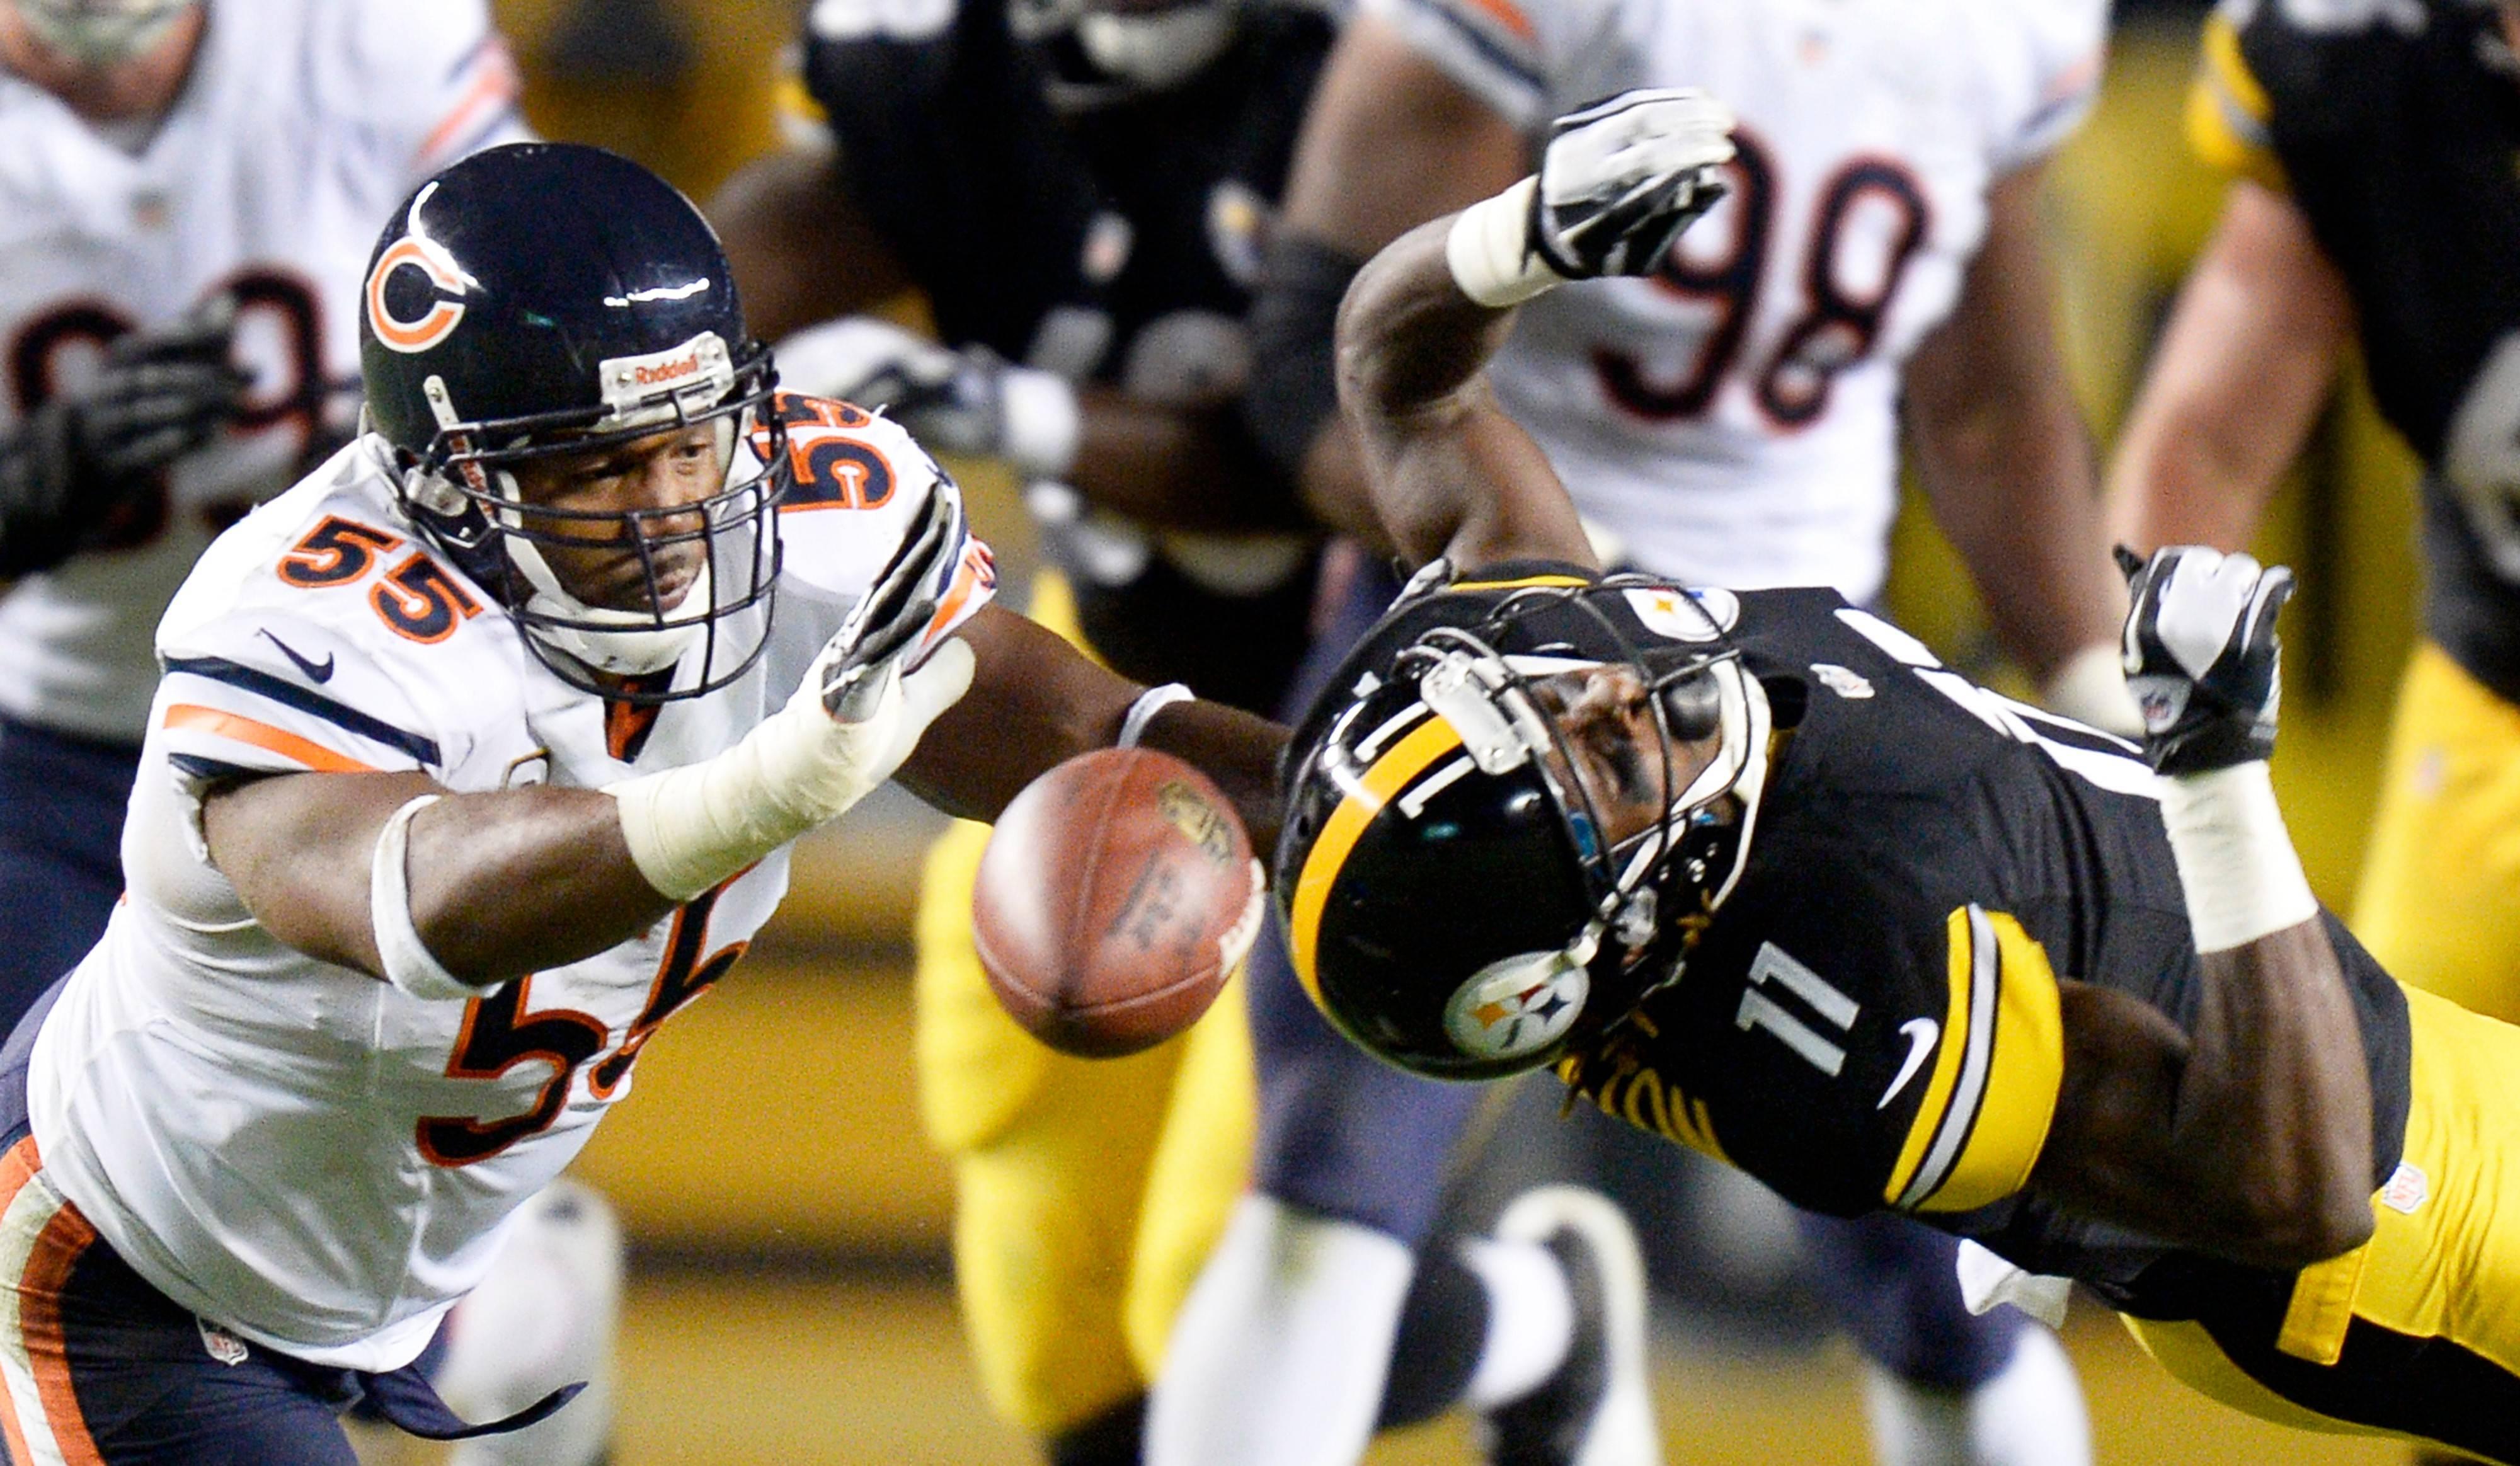 Lance Briggs, here defending a pass against the Steelers last season, is excited about getting back on the field after missing seven games in 2013.